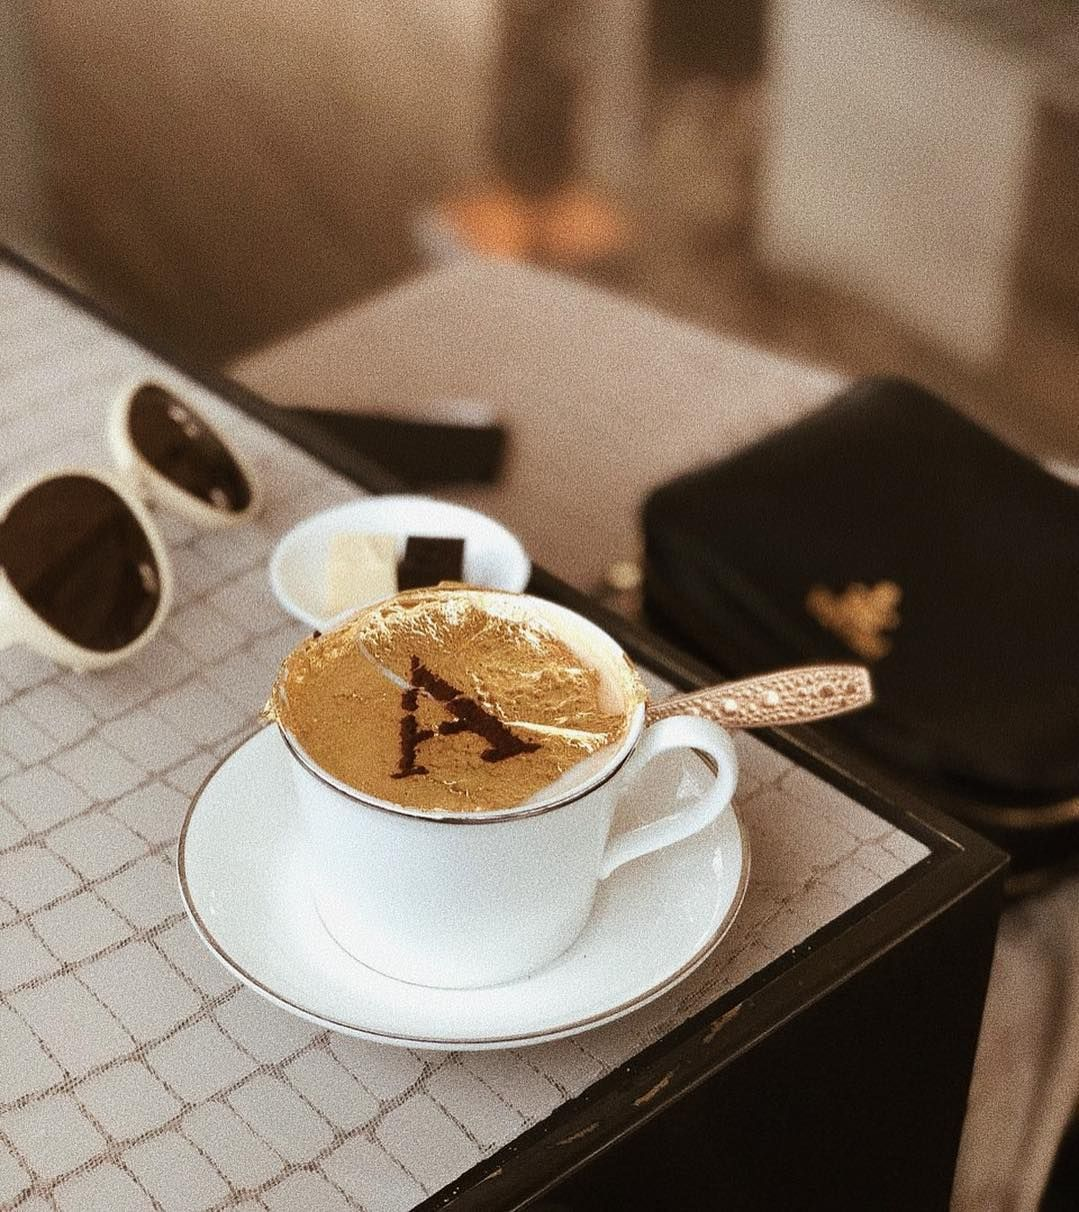 Don T Underestimate The Power Of Coffee A Girl With A Dream In 2020 Tableware Glassware Coffee